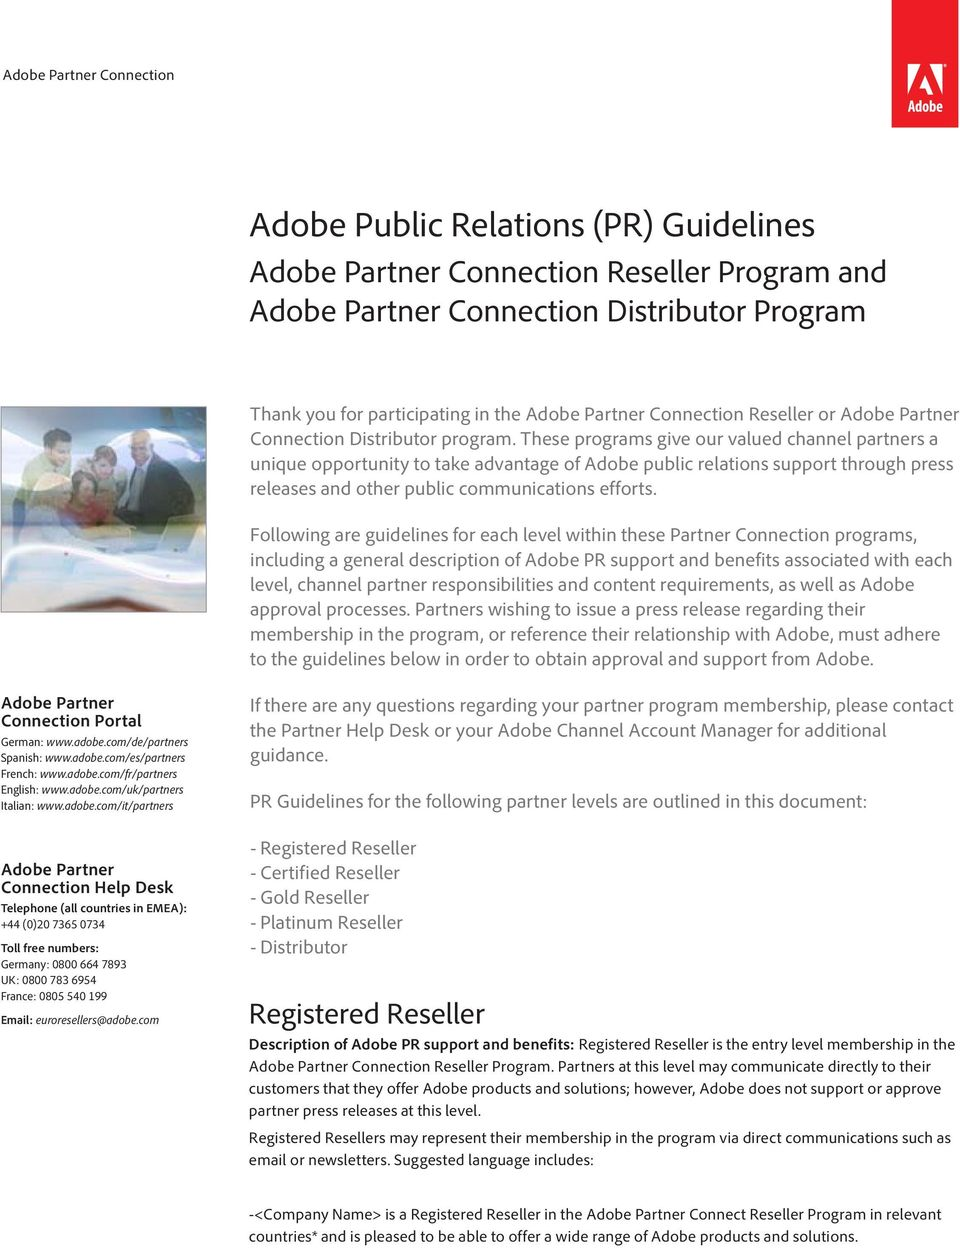 These programs give our valued channel partners a unique opportunity to take advantage of Adobe public relations support through press releases and other public communications efforts.